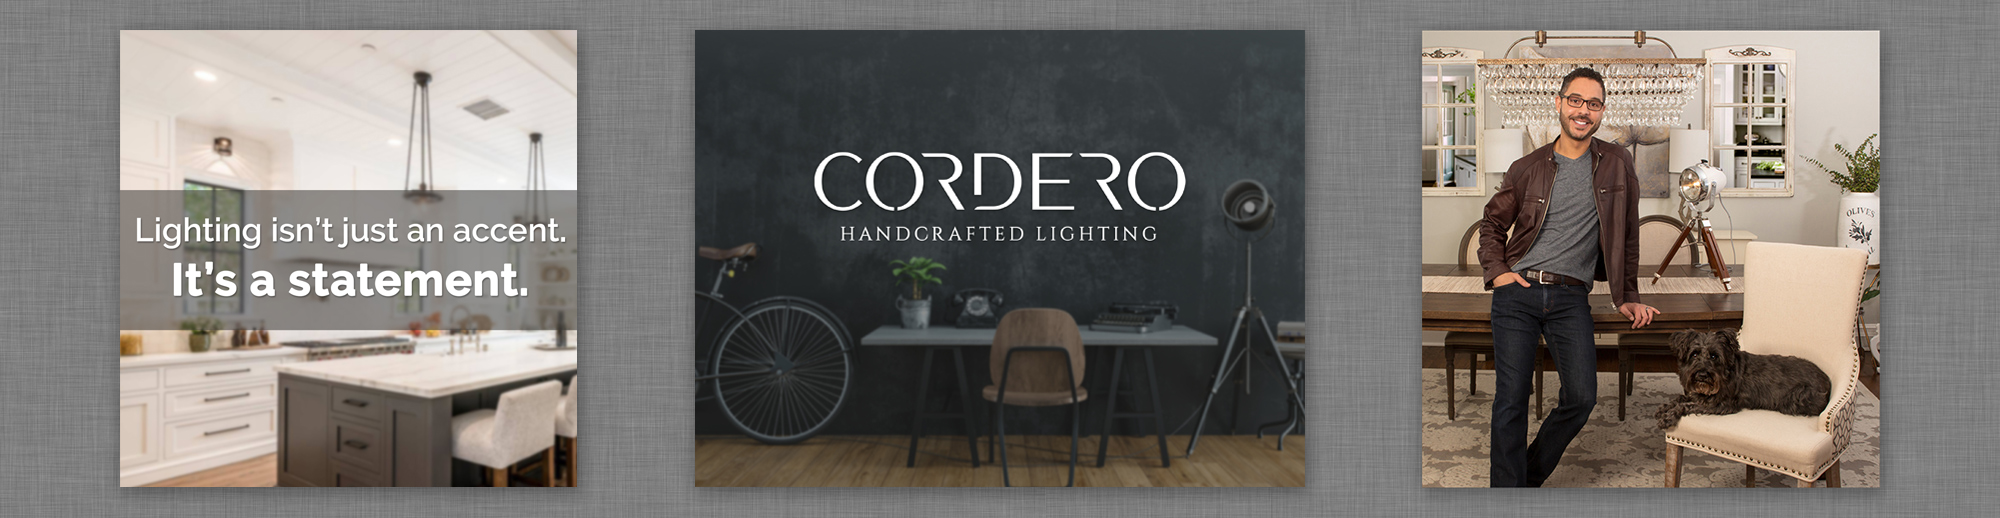 Cordero Handcrafted Lighting Banner